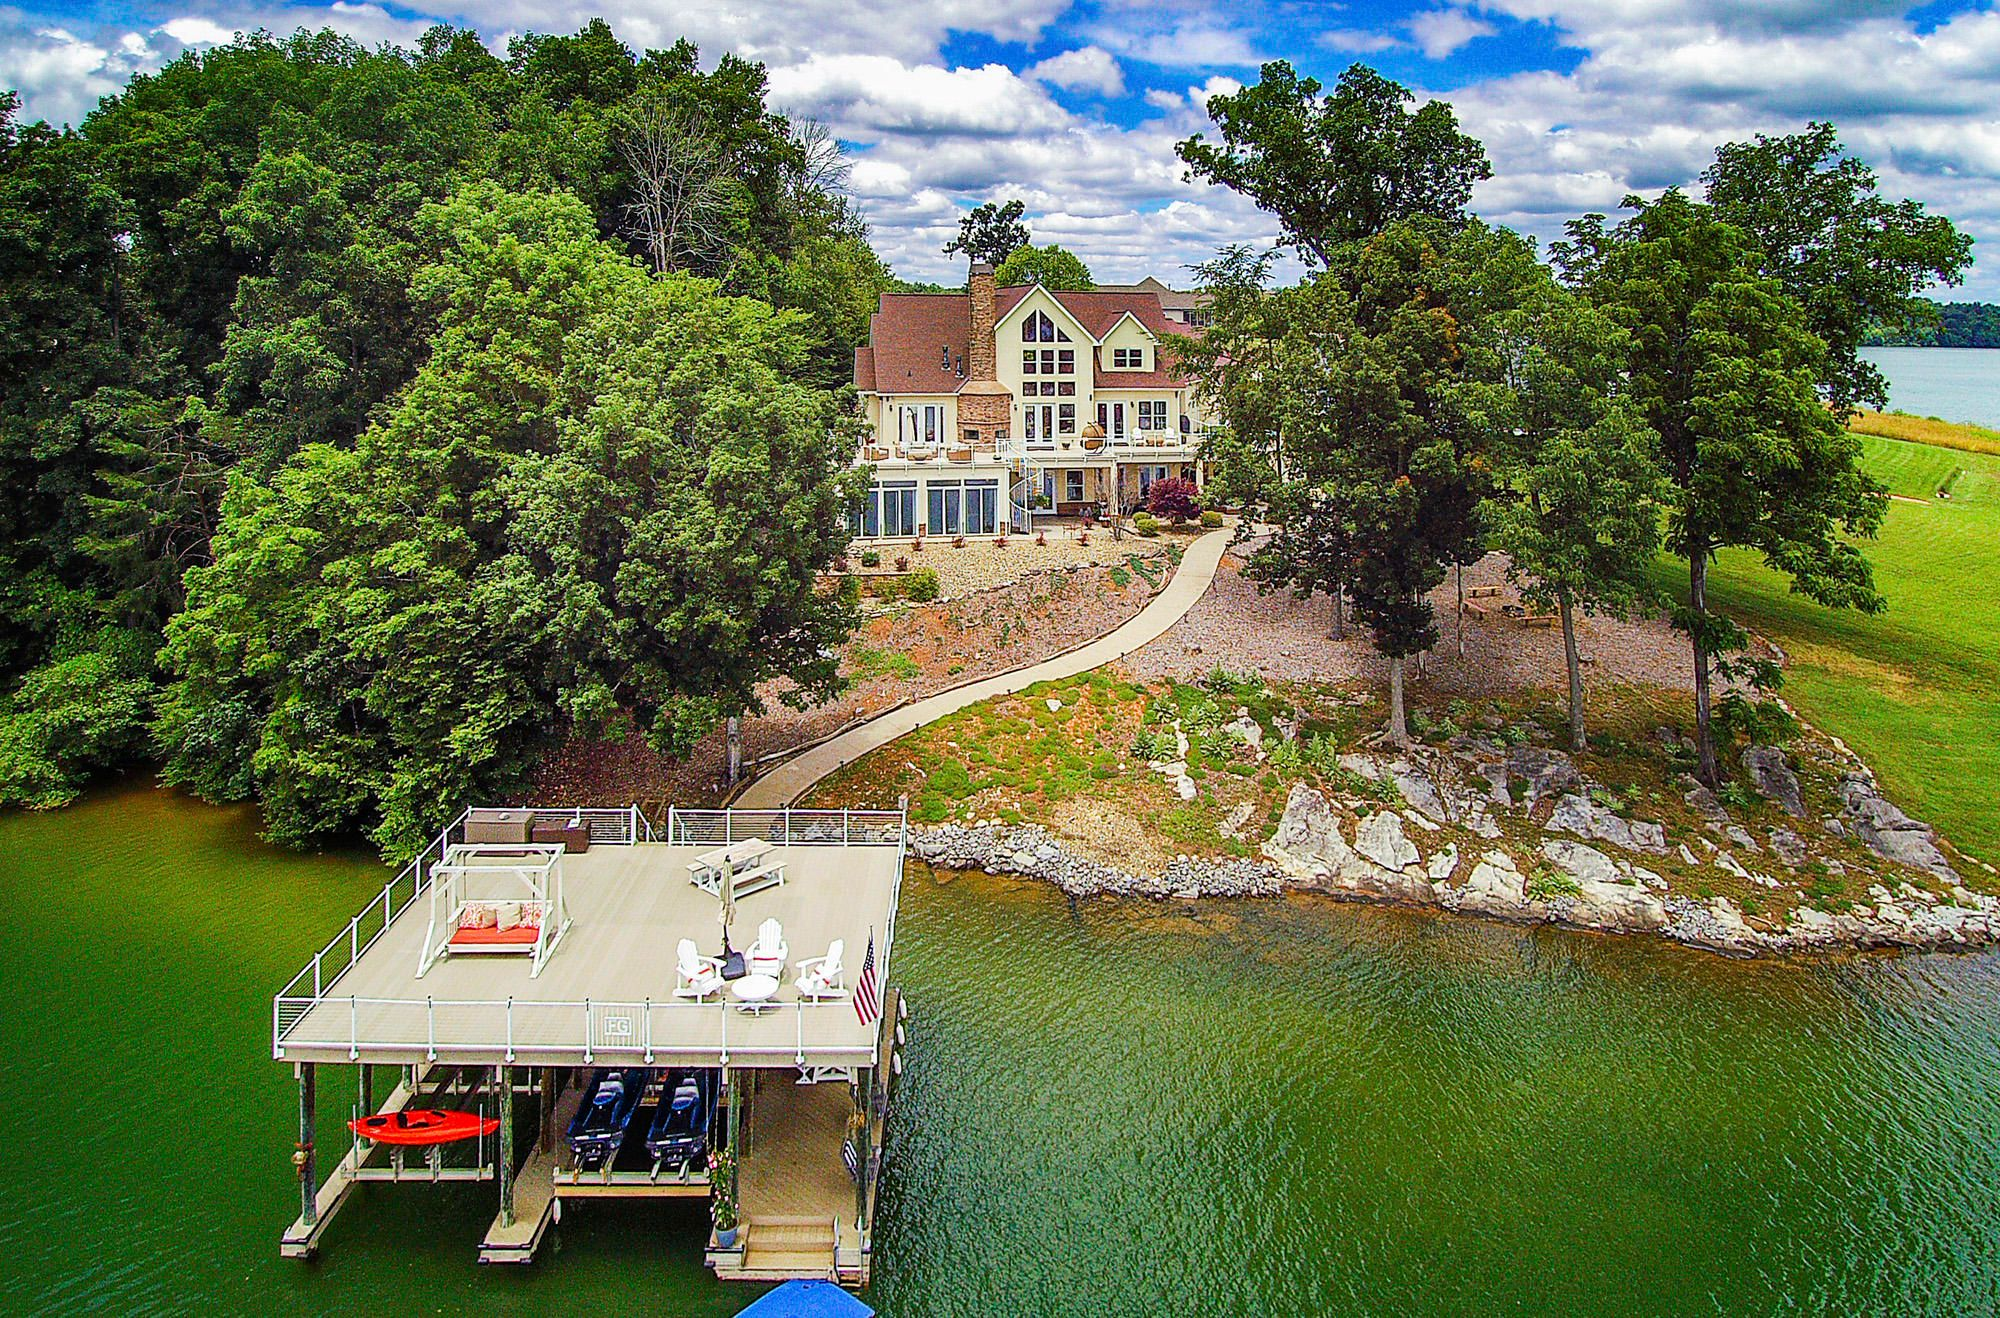 Two Level Dock to Enjoy the Lake!